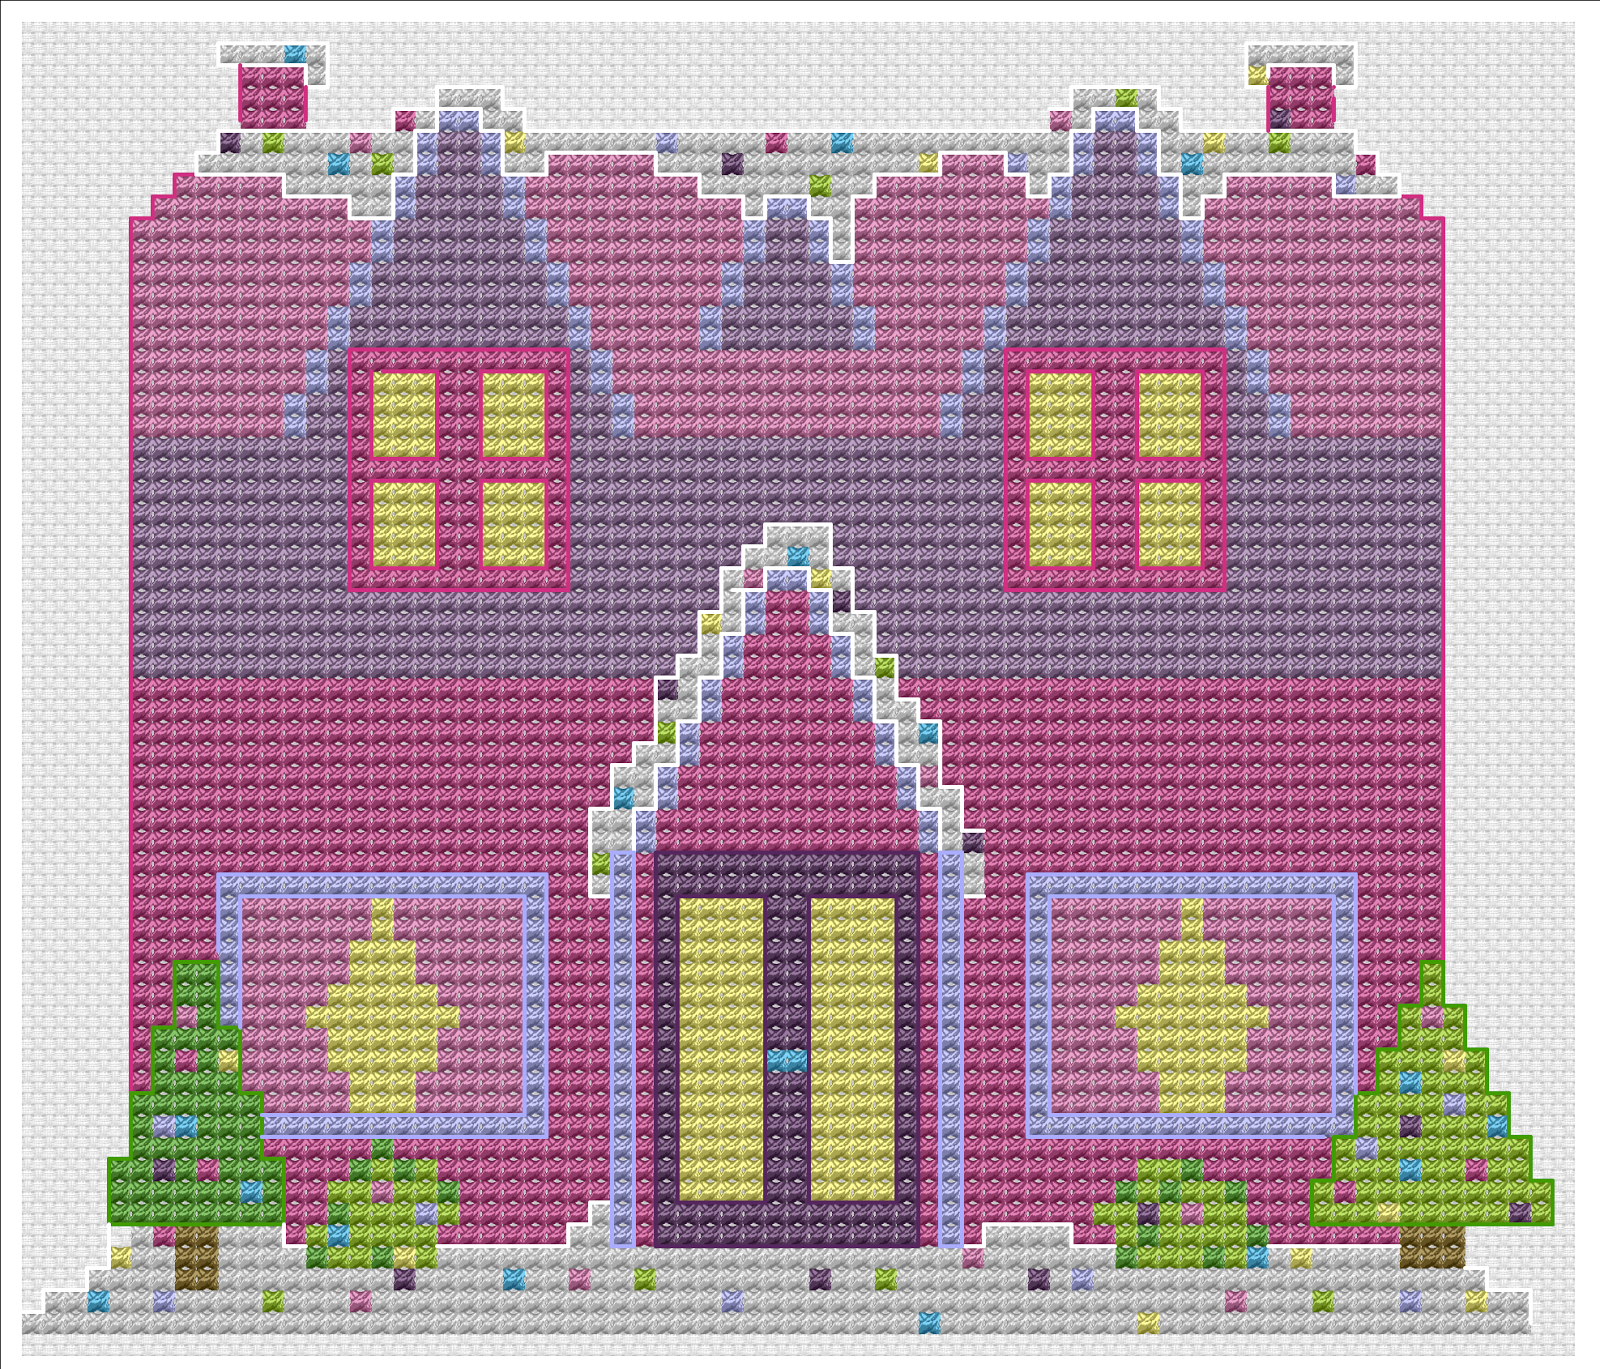 All the Whos Down in Whoville: Candy Manor Gingerbread House Pattern